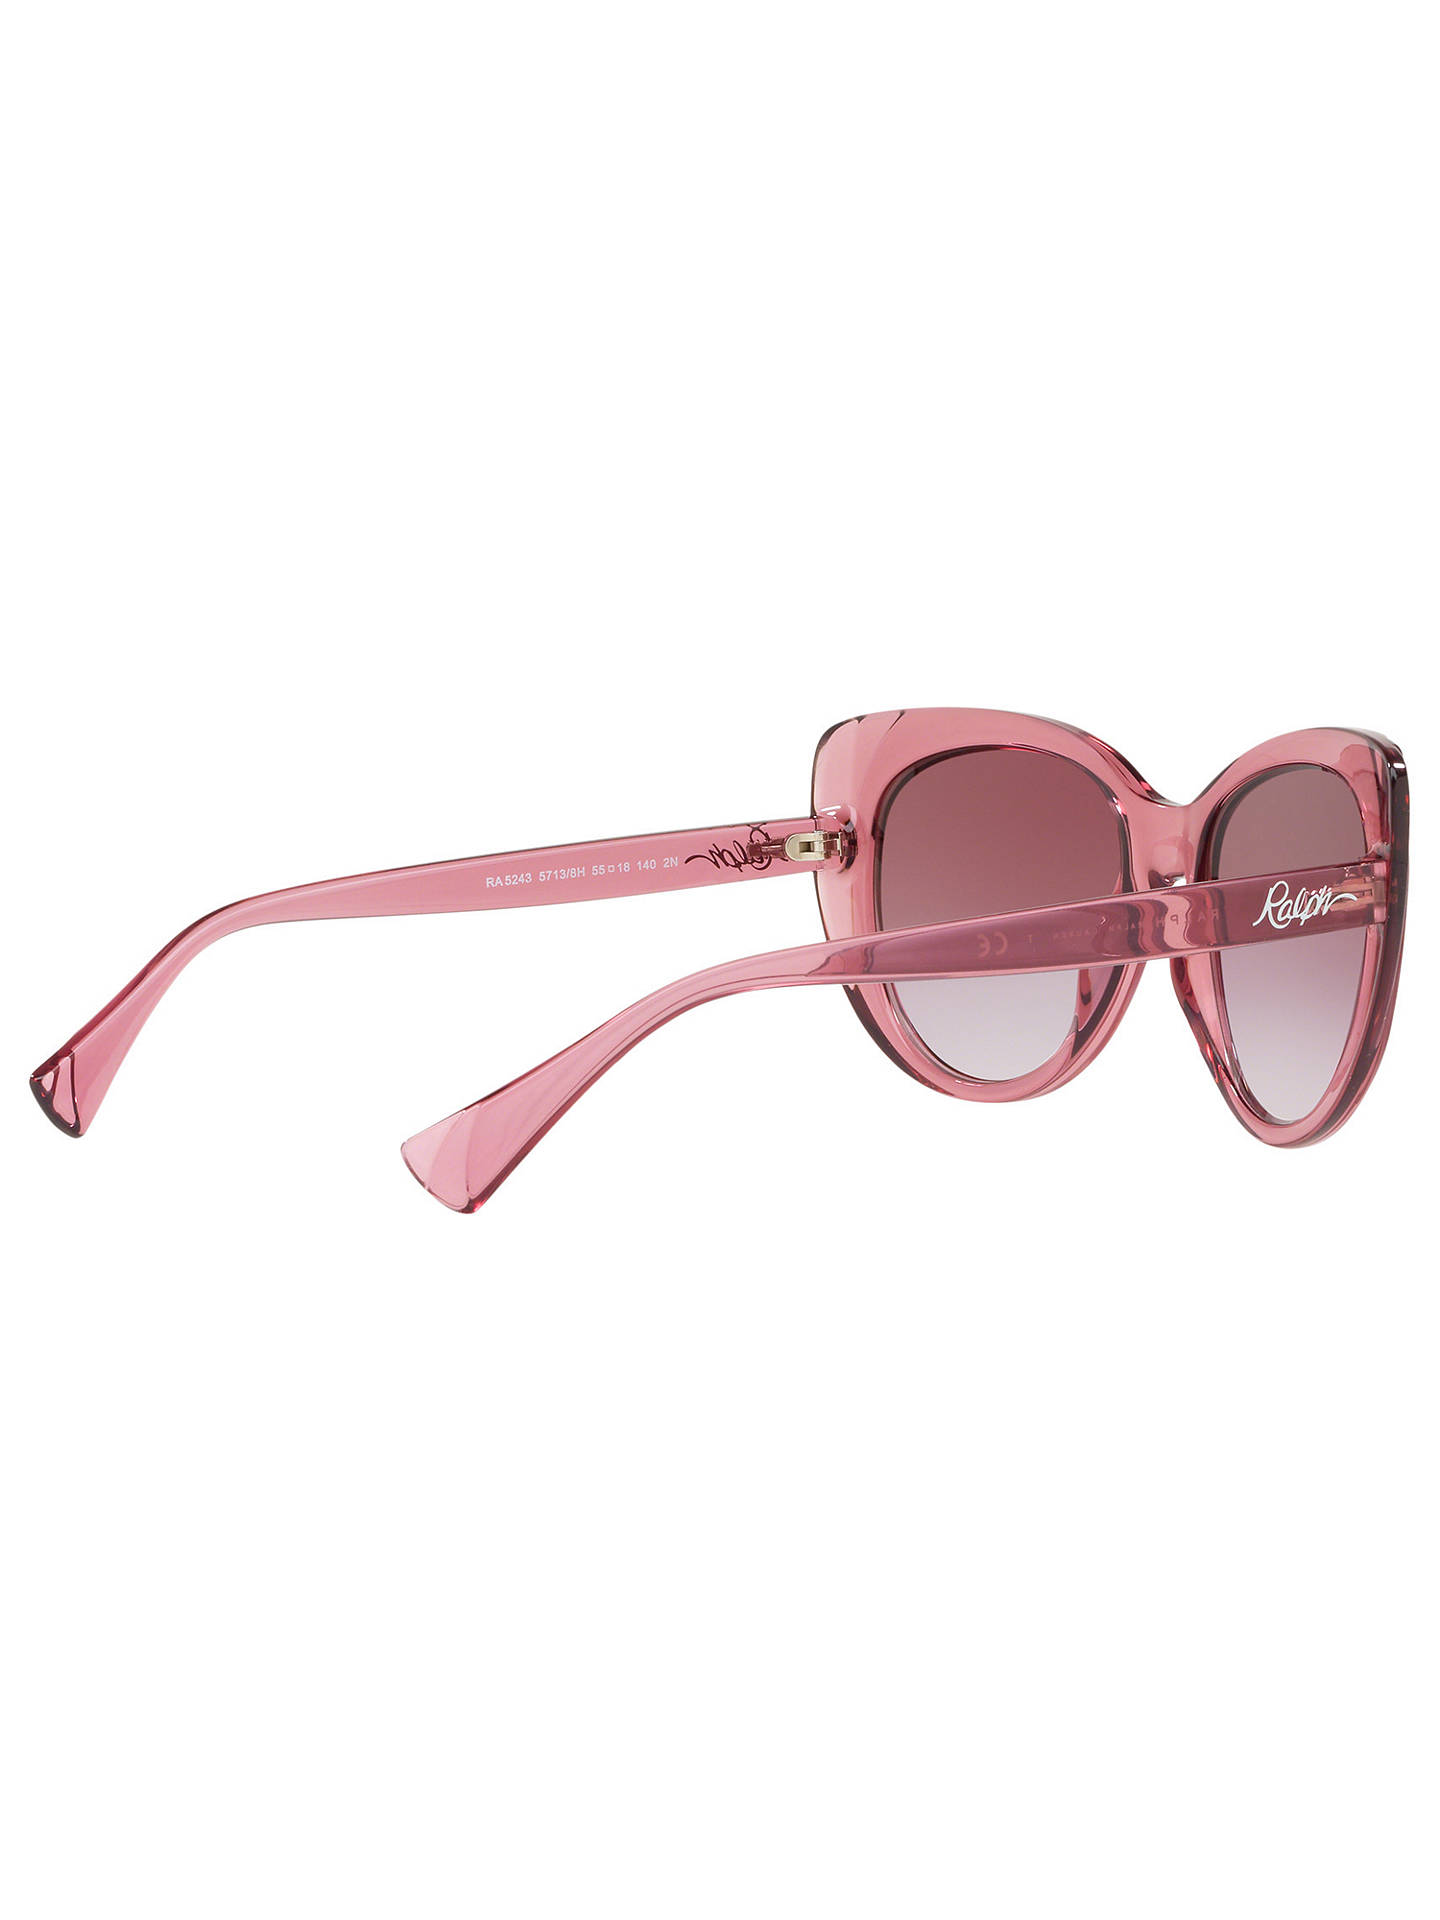 Buy Ralph RA5243 Women's Cat's Eye Sunglasses, Pink/Purple Gradient Online at johnlewis.com